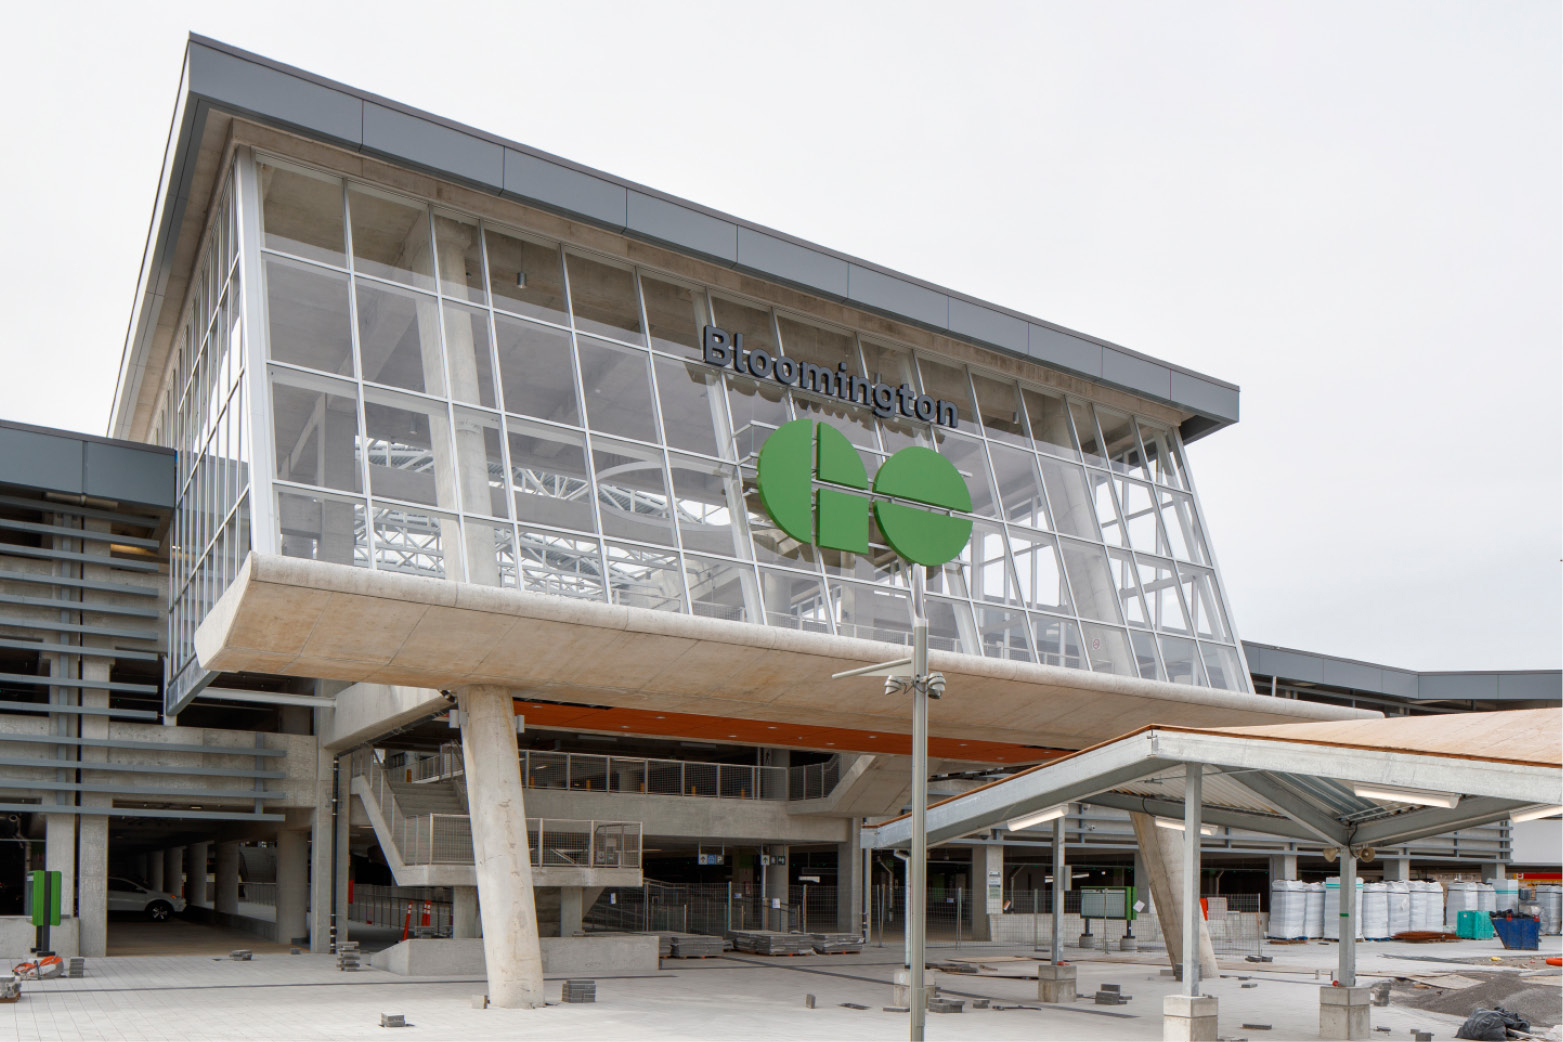 Metrolinx's now-open Bloomington GO Station in York Region at Highway 404 and Bloomington Road extends the Richmond Hill line approximately 3 miles north.